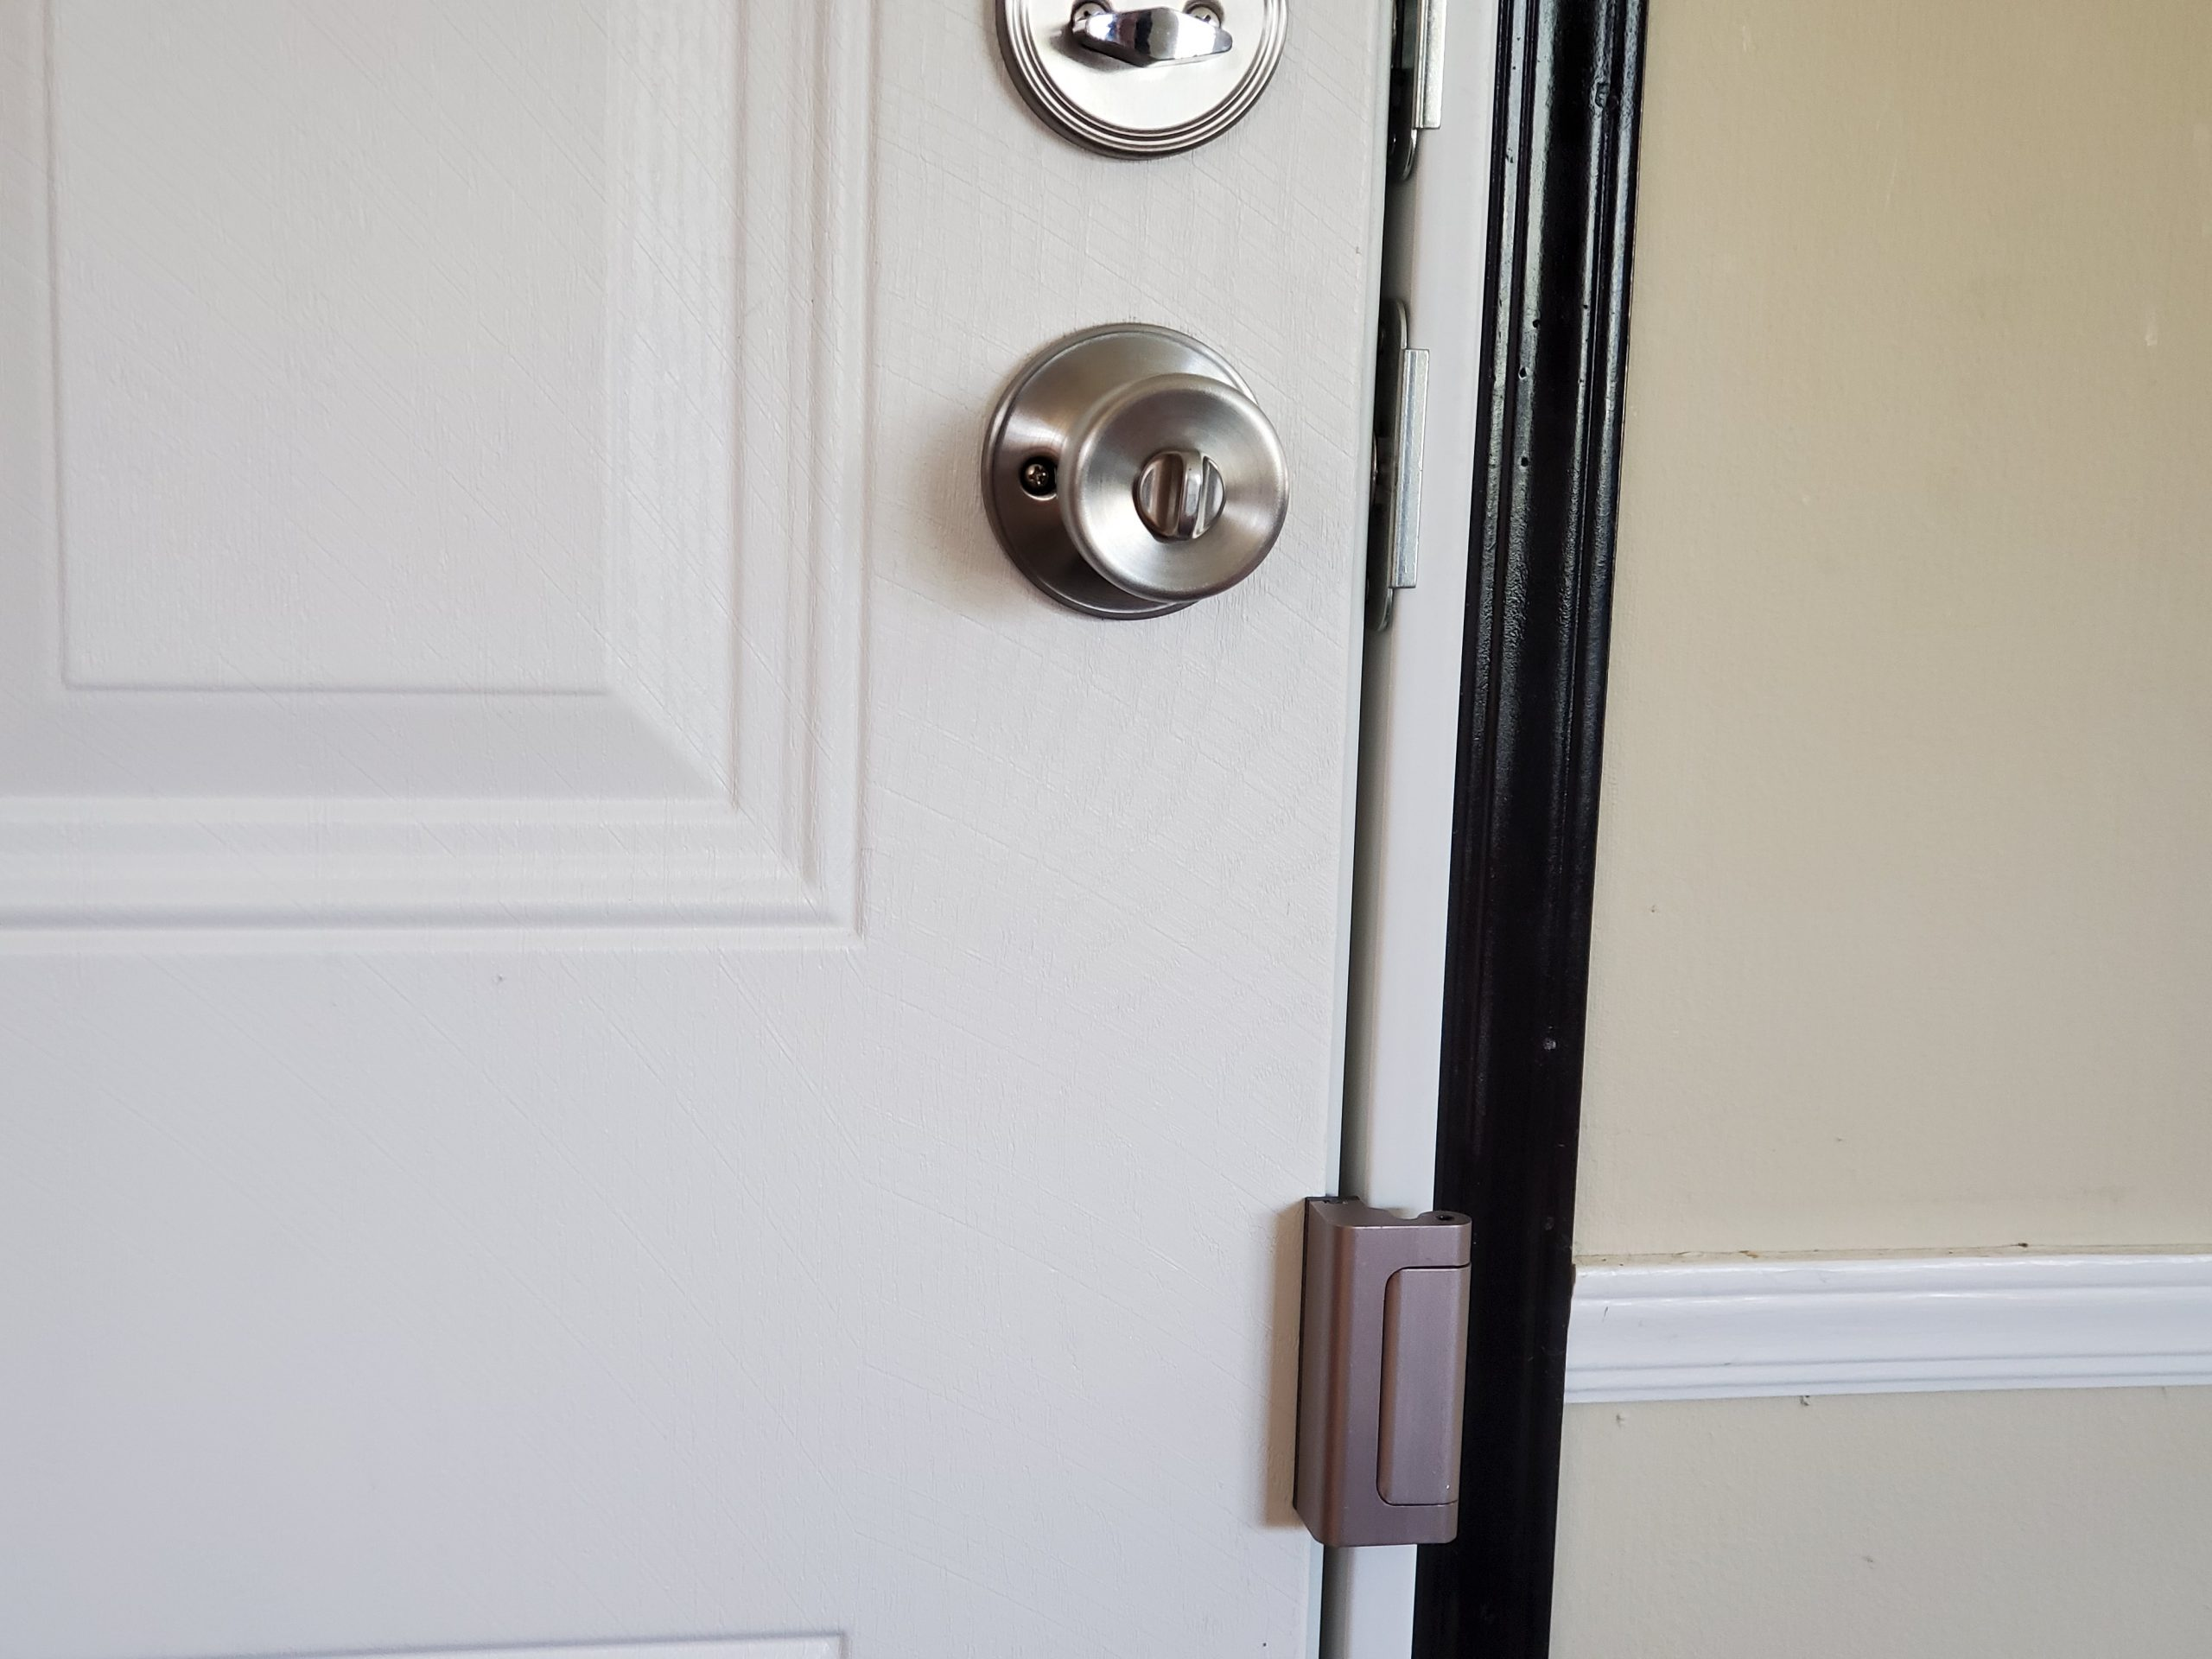 Home security lock, Pick proof, Bump Proof locking device